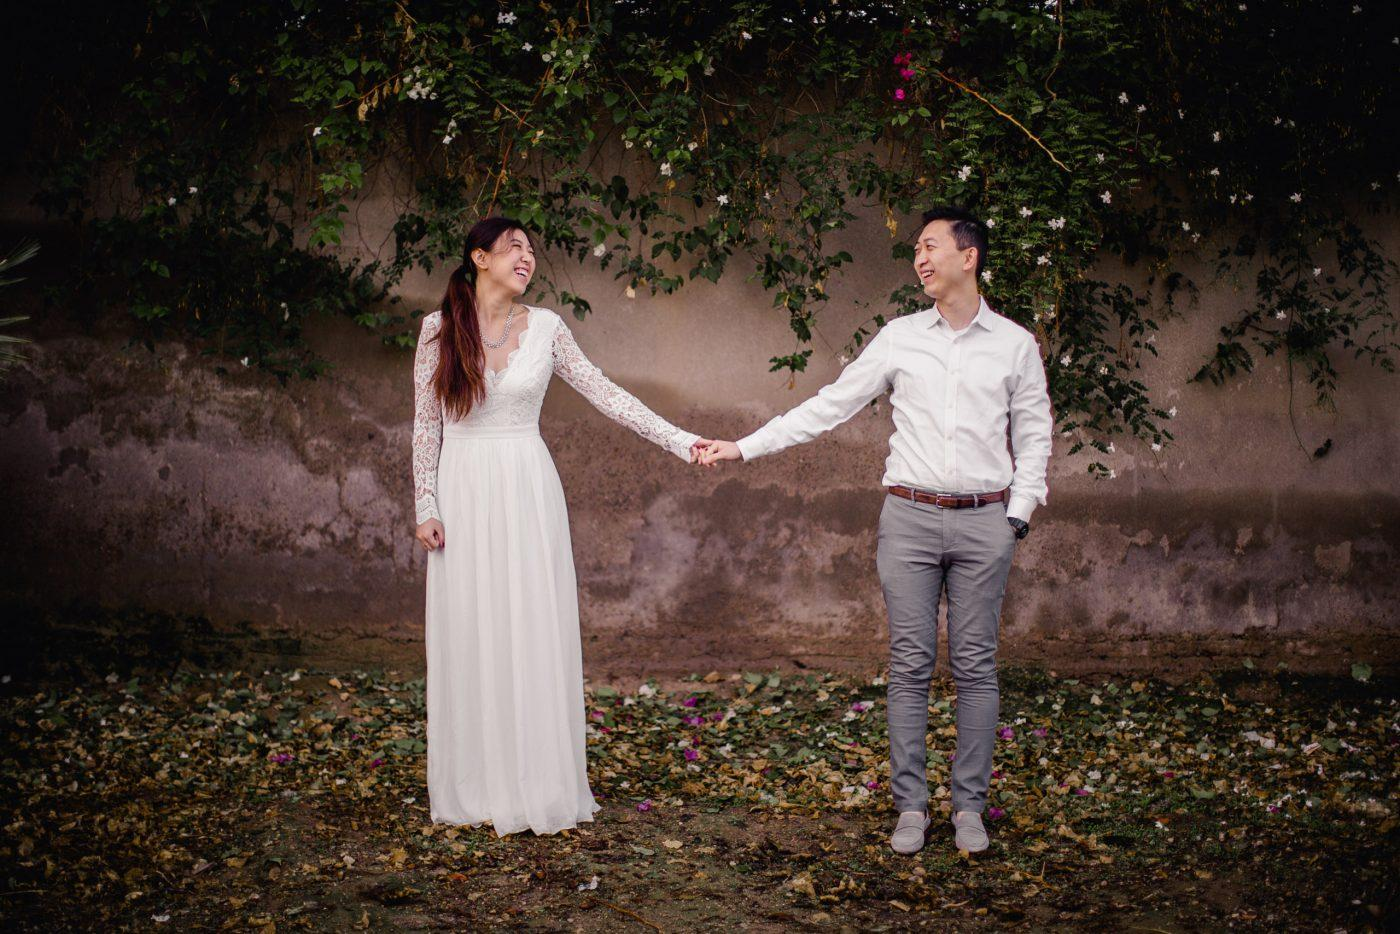 Engagement photography at Marrakech palmeraie